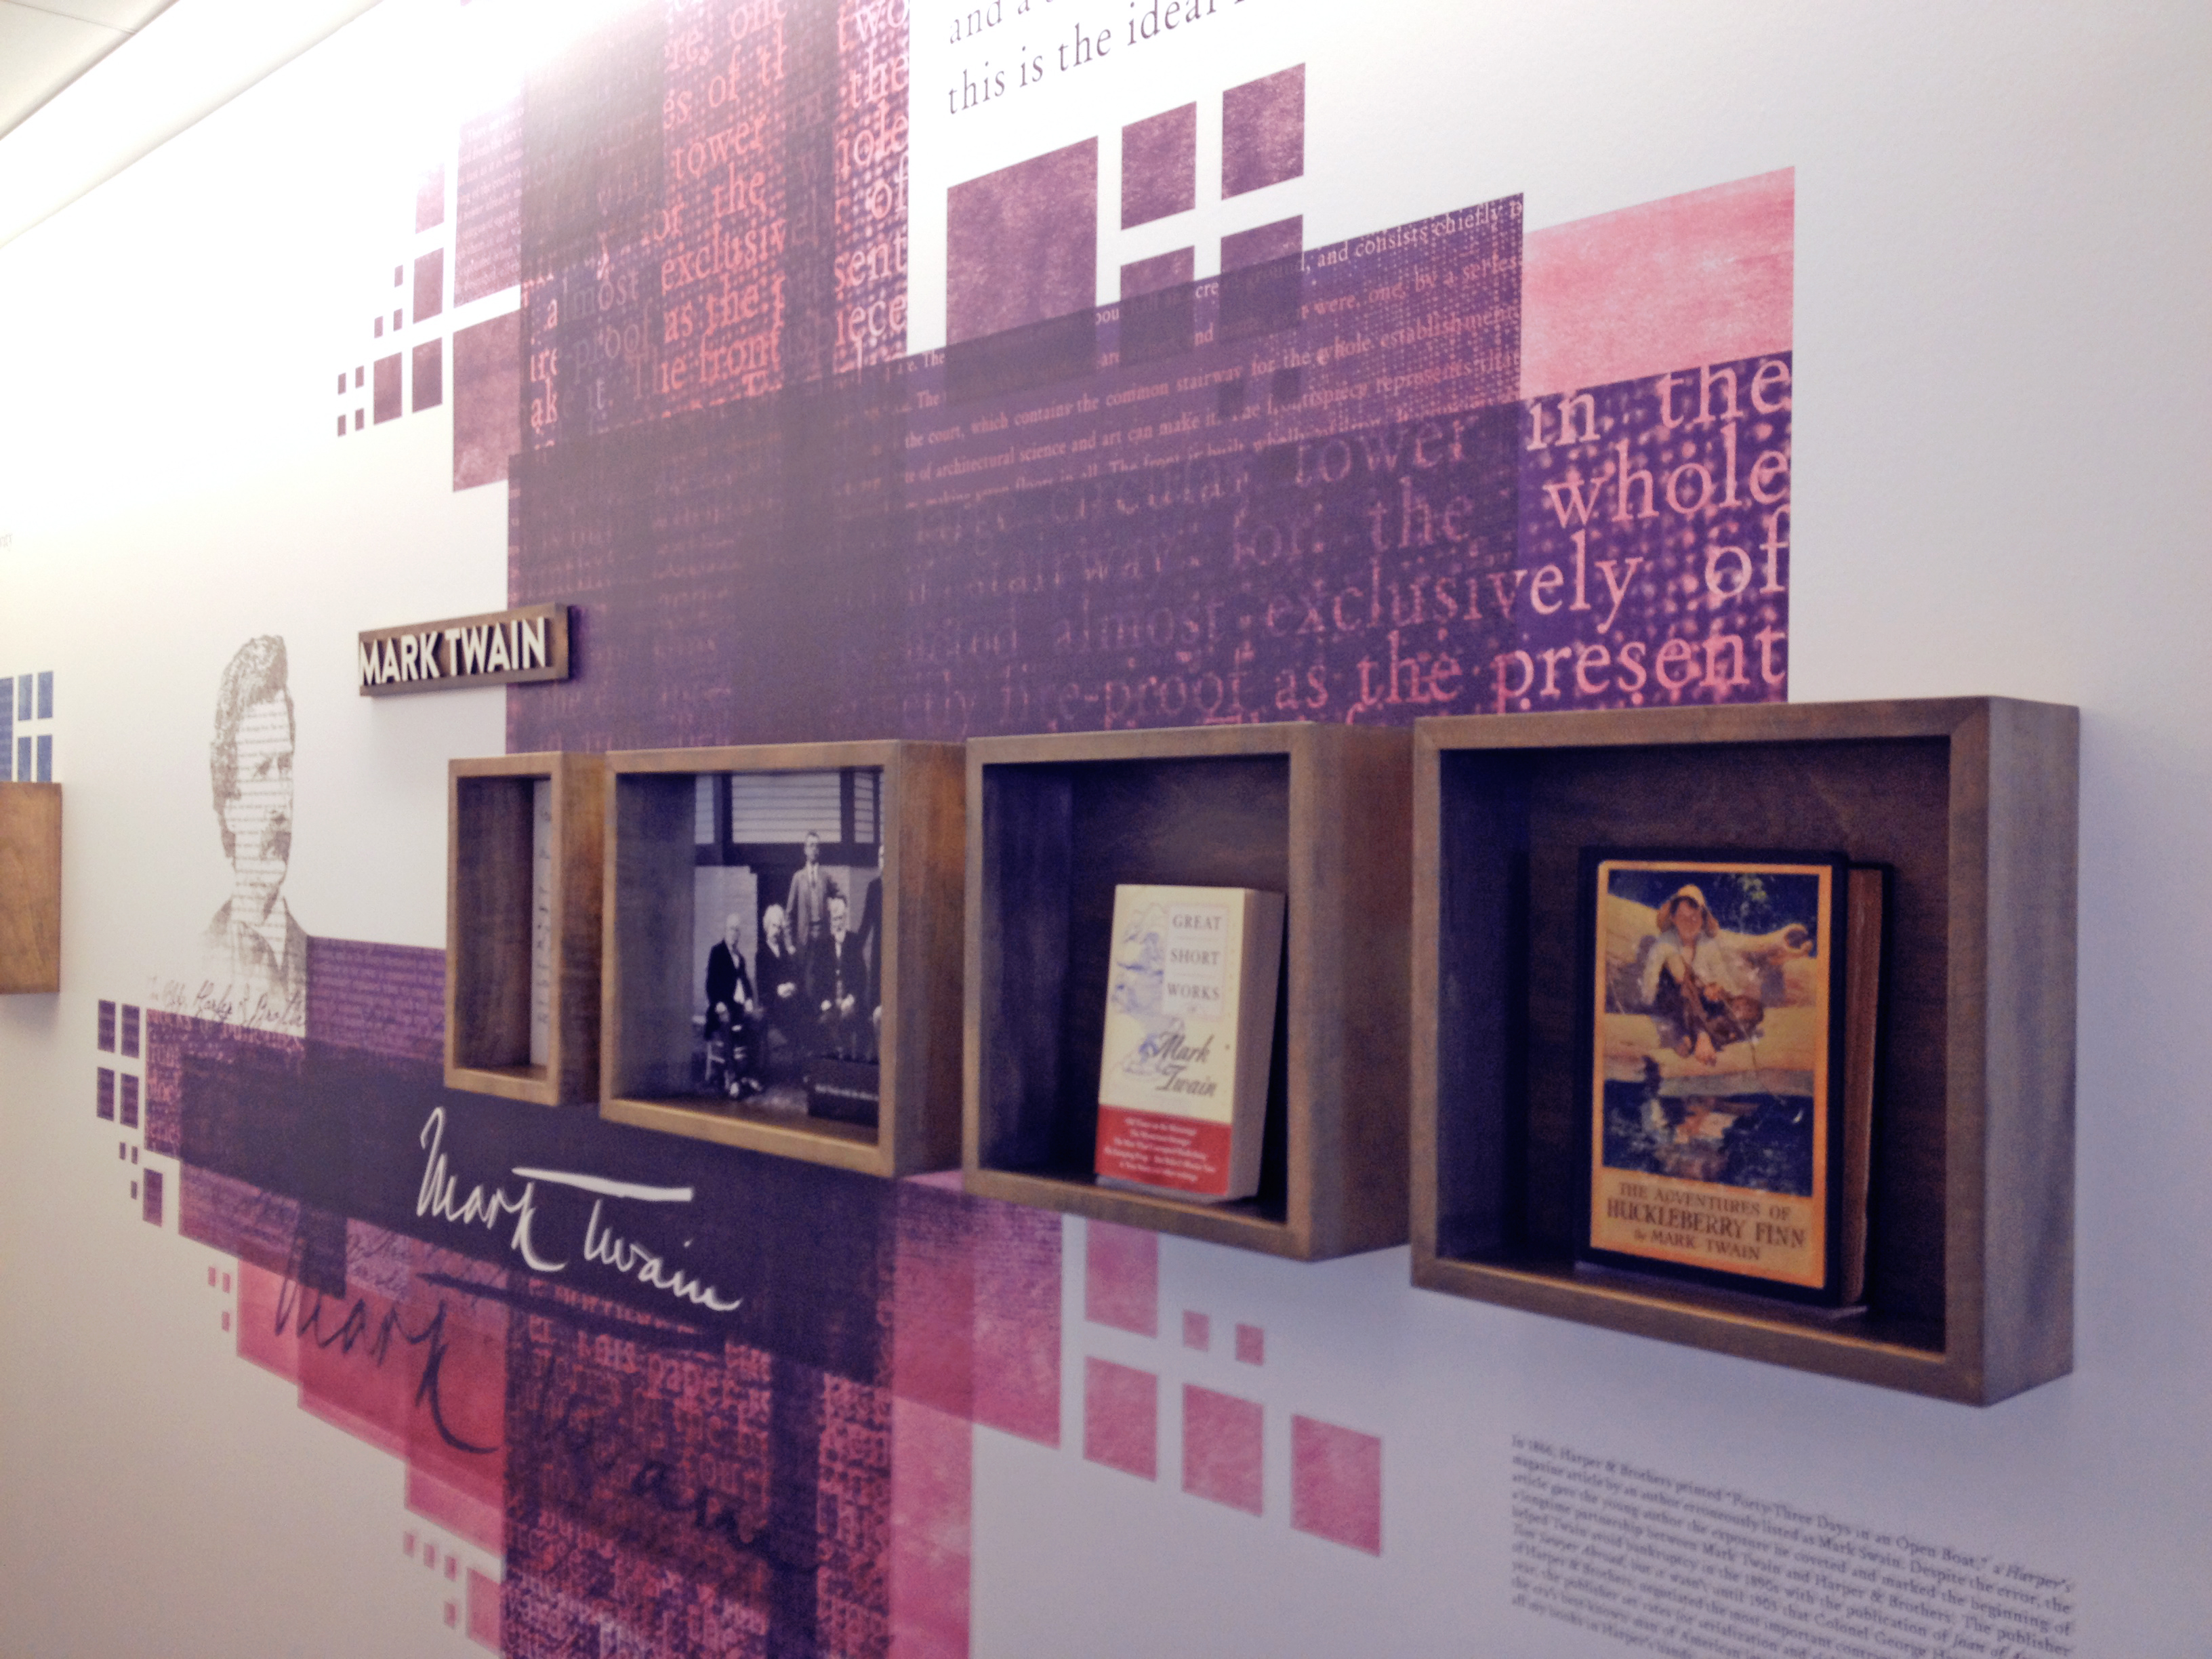 This is a photograph from HarperCollin's visitor exhibit, which honors many of the publisher's authors.